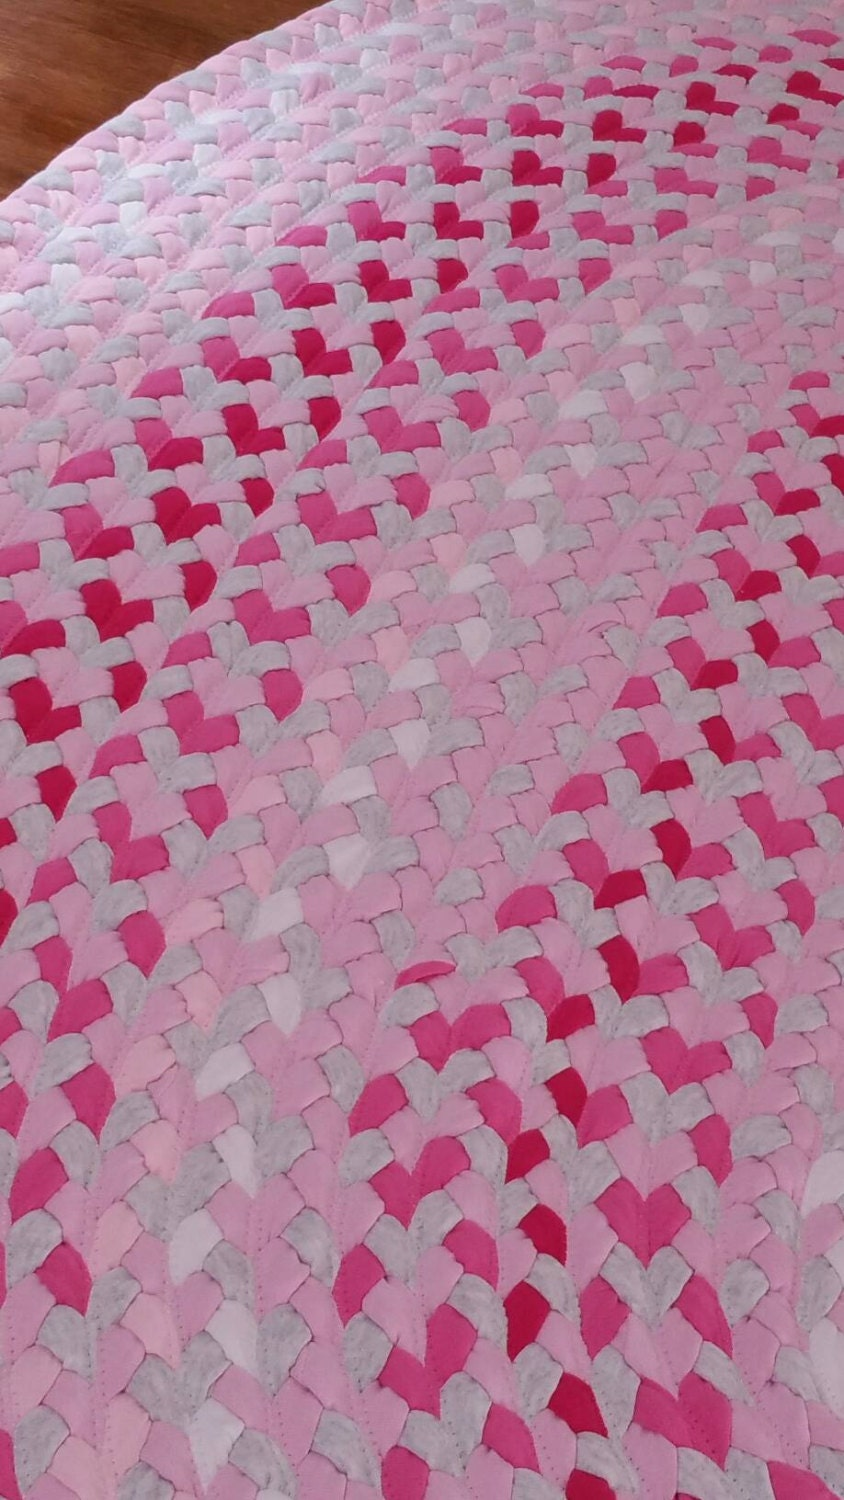 Pink bed sheet texture - Gallery Photo Gallery Photo Gallery Photo Gallery Photo Gallery Photo